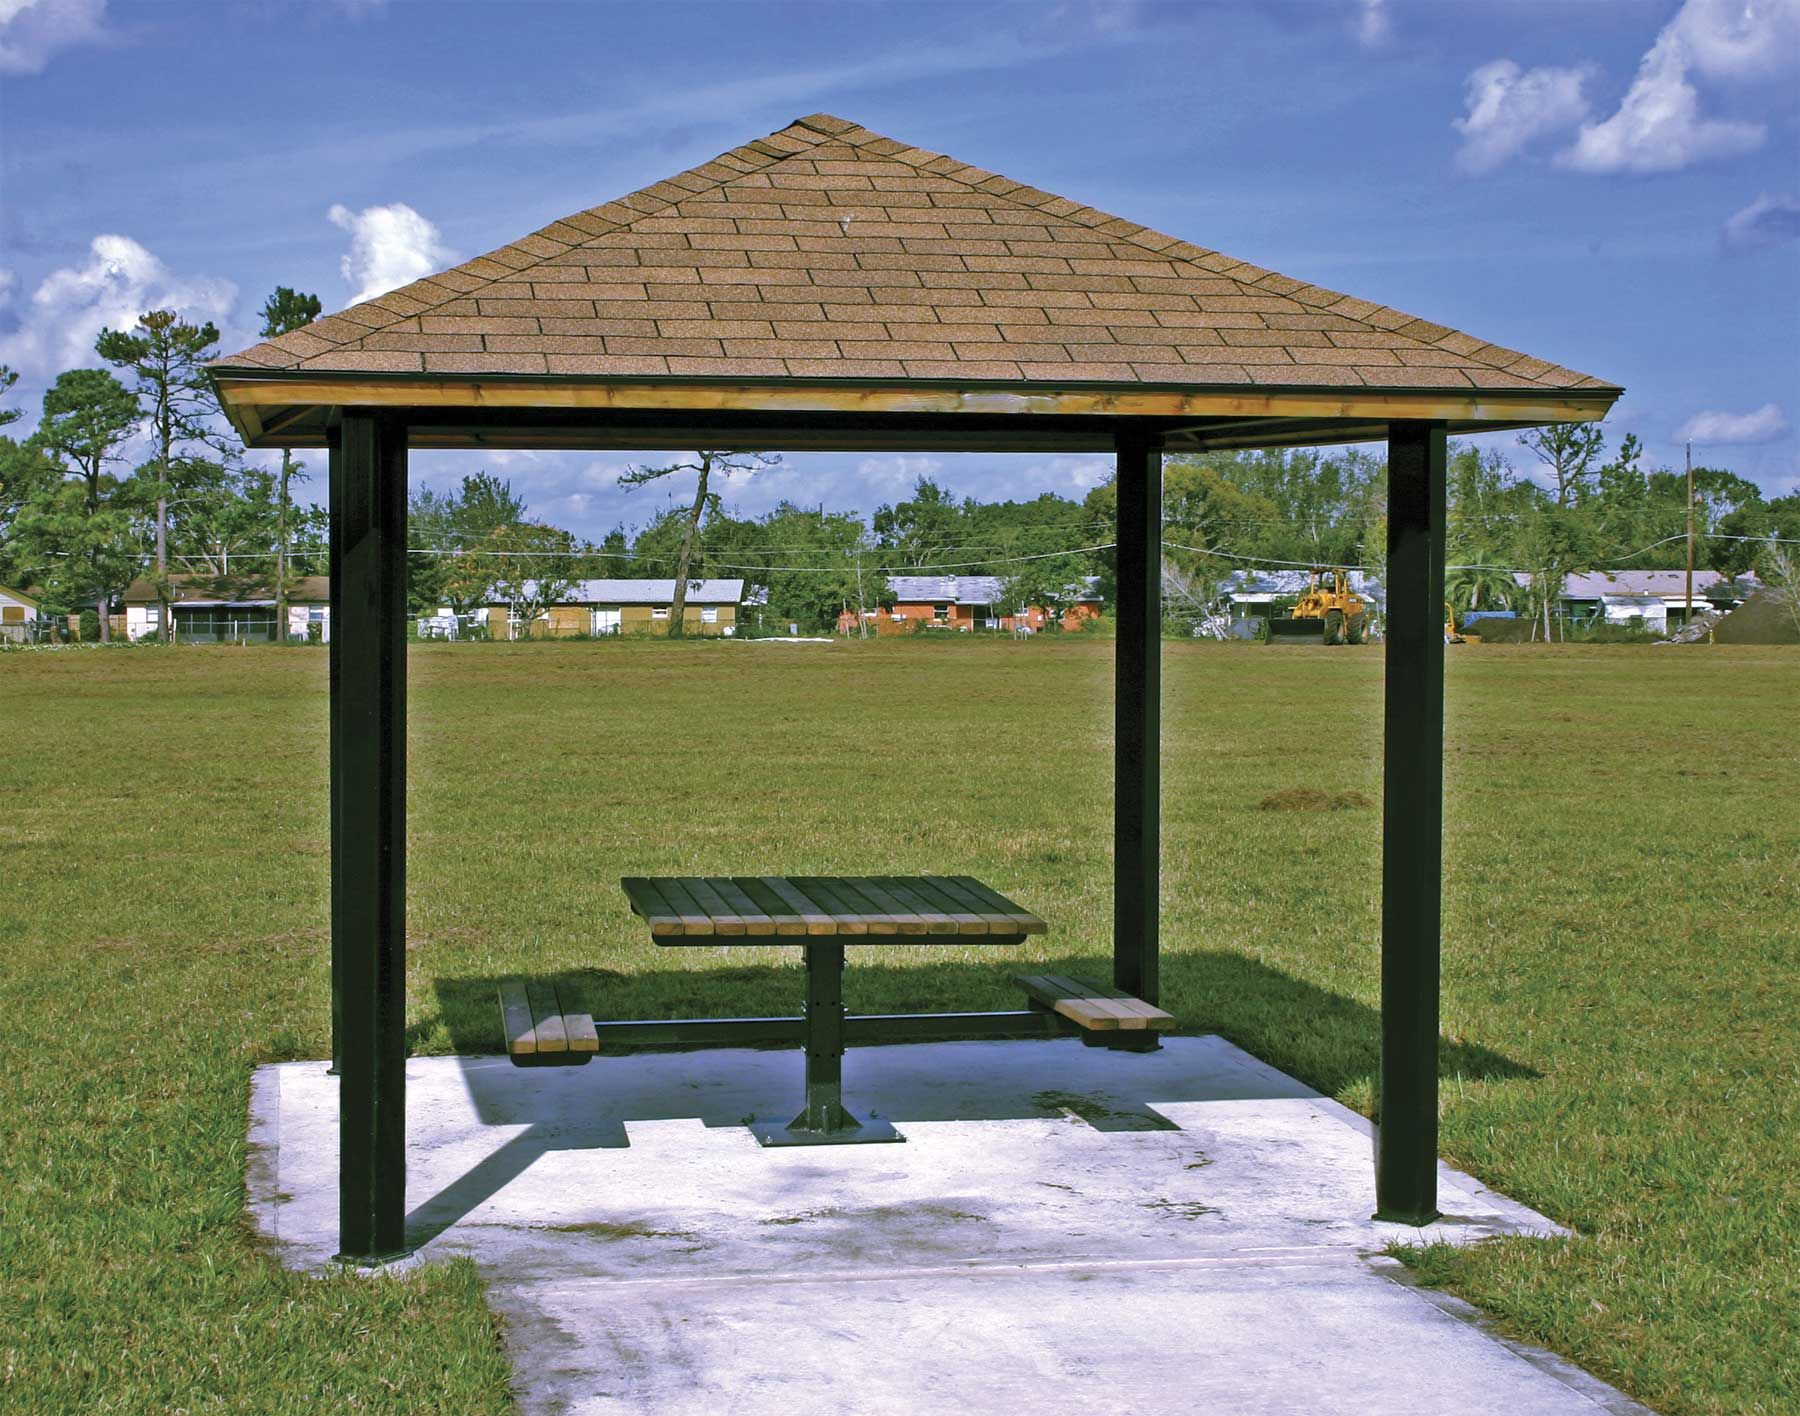 Best Metal Gazebo Kits For Sale (With images) | Roof ...